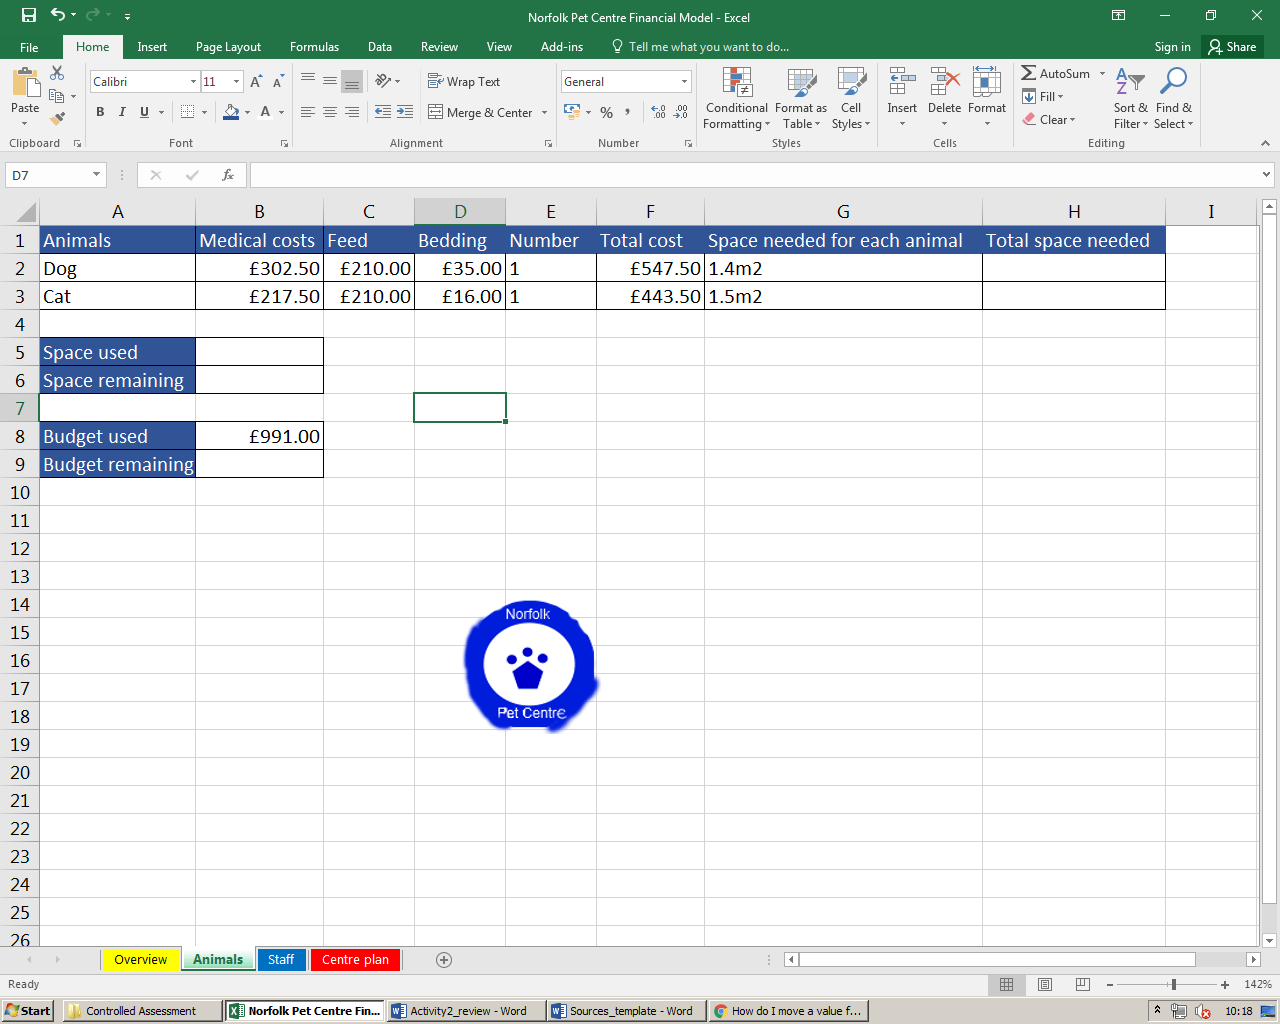 How Do I Move A Value From One Table To Another In The